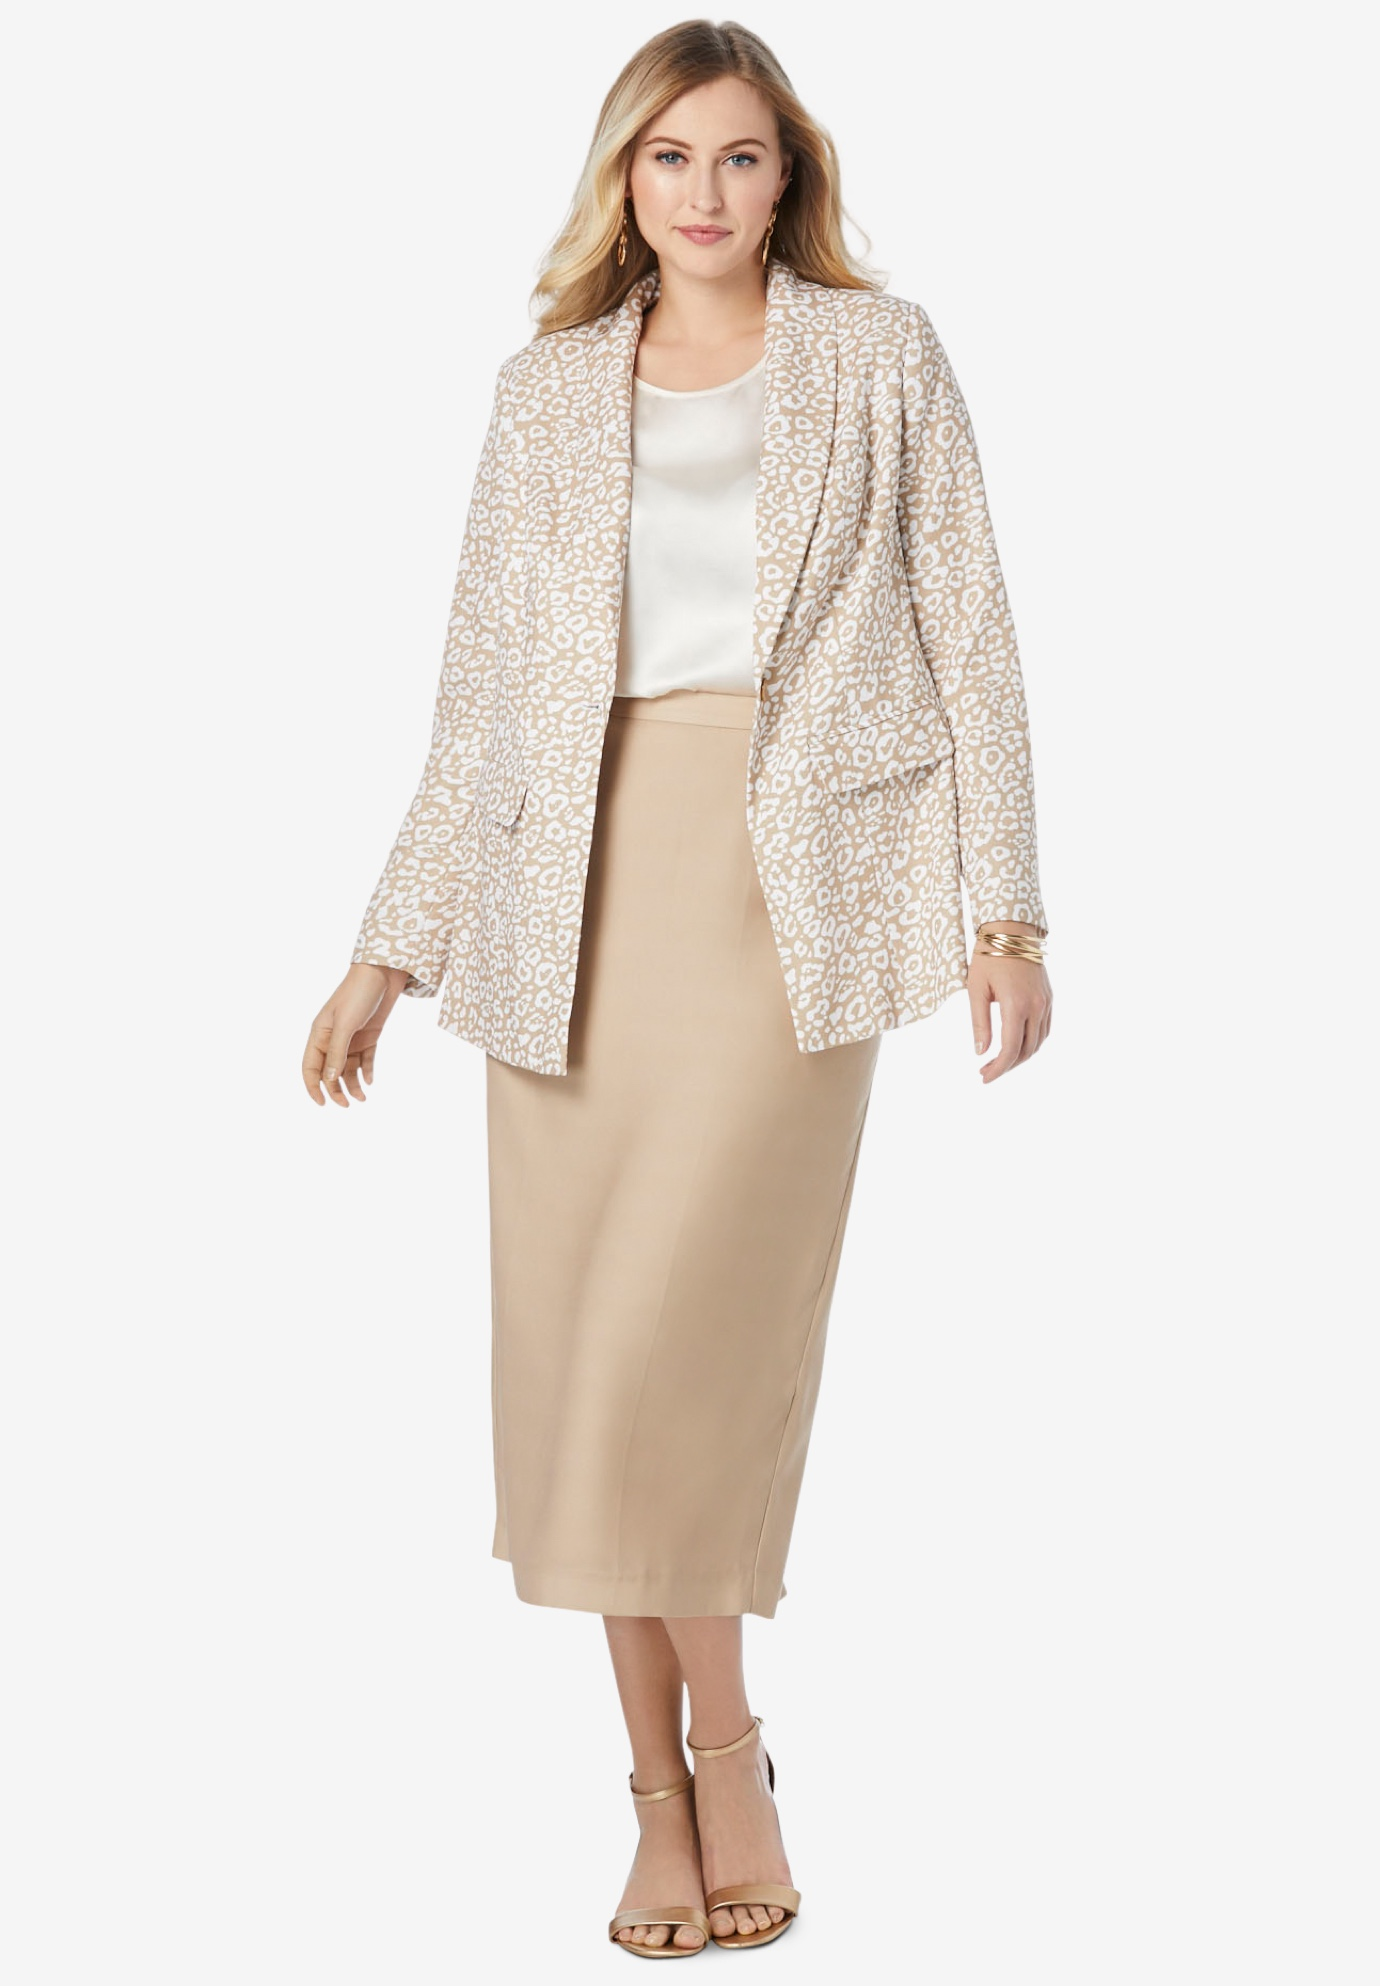 Jessica London Womens Plus Size Single-Breasted Skirt Suit Set